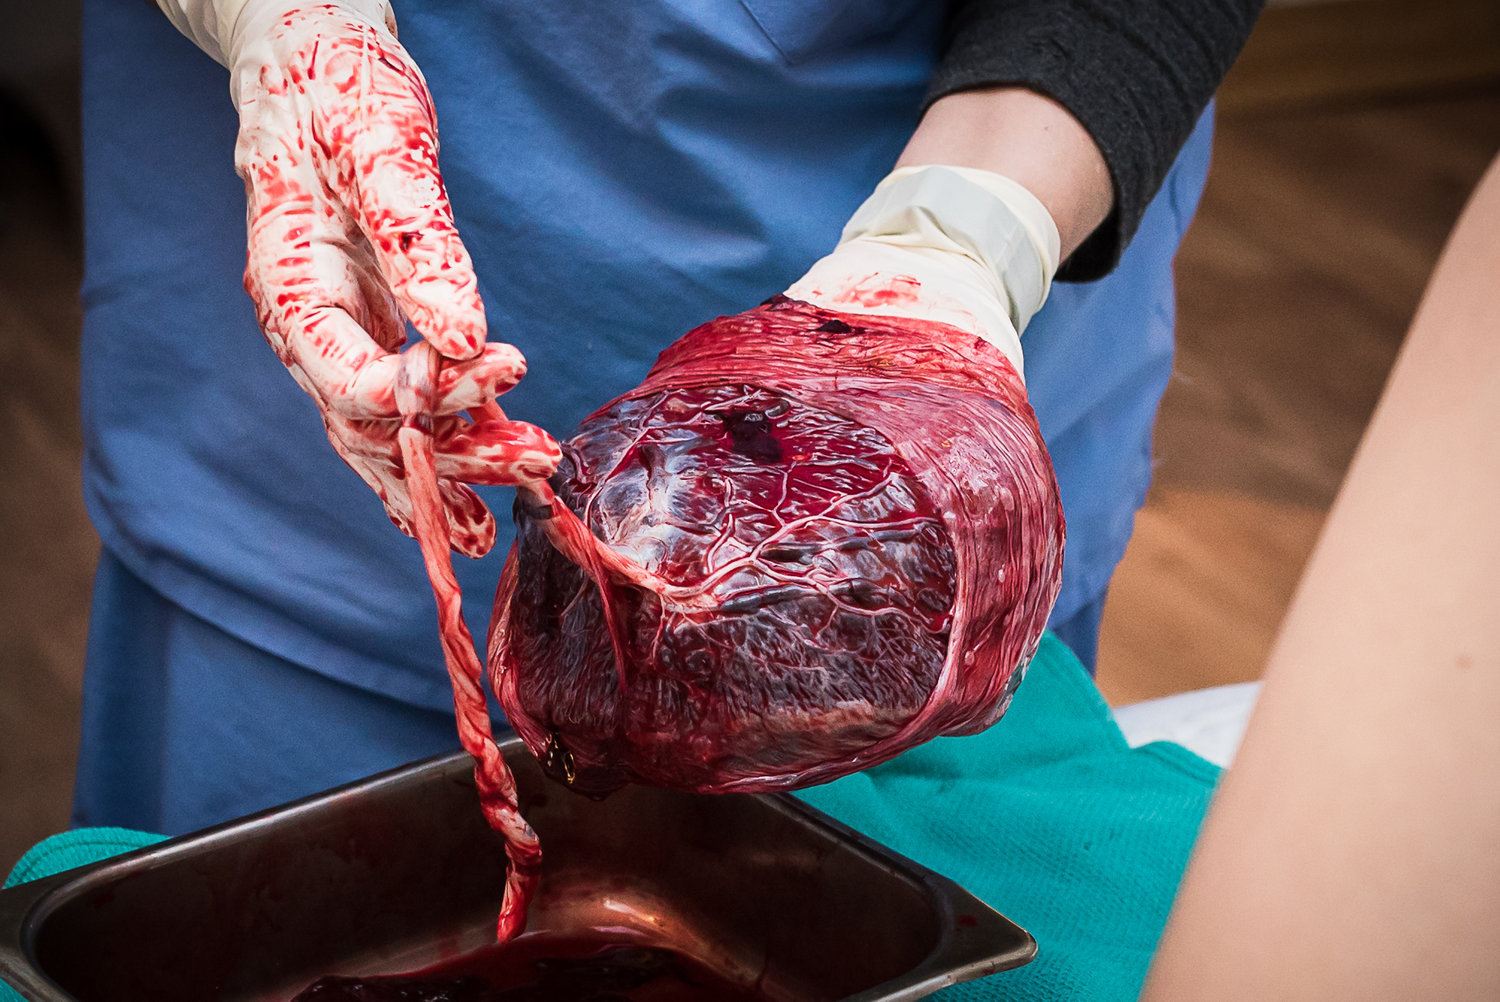 Placenta after birth